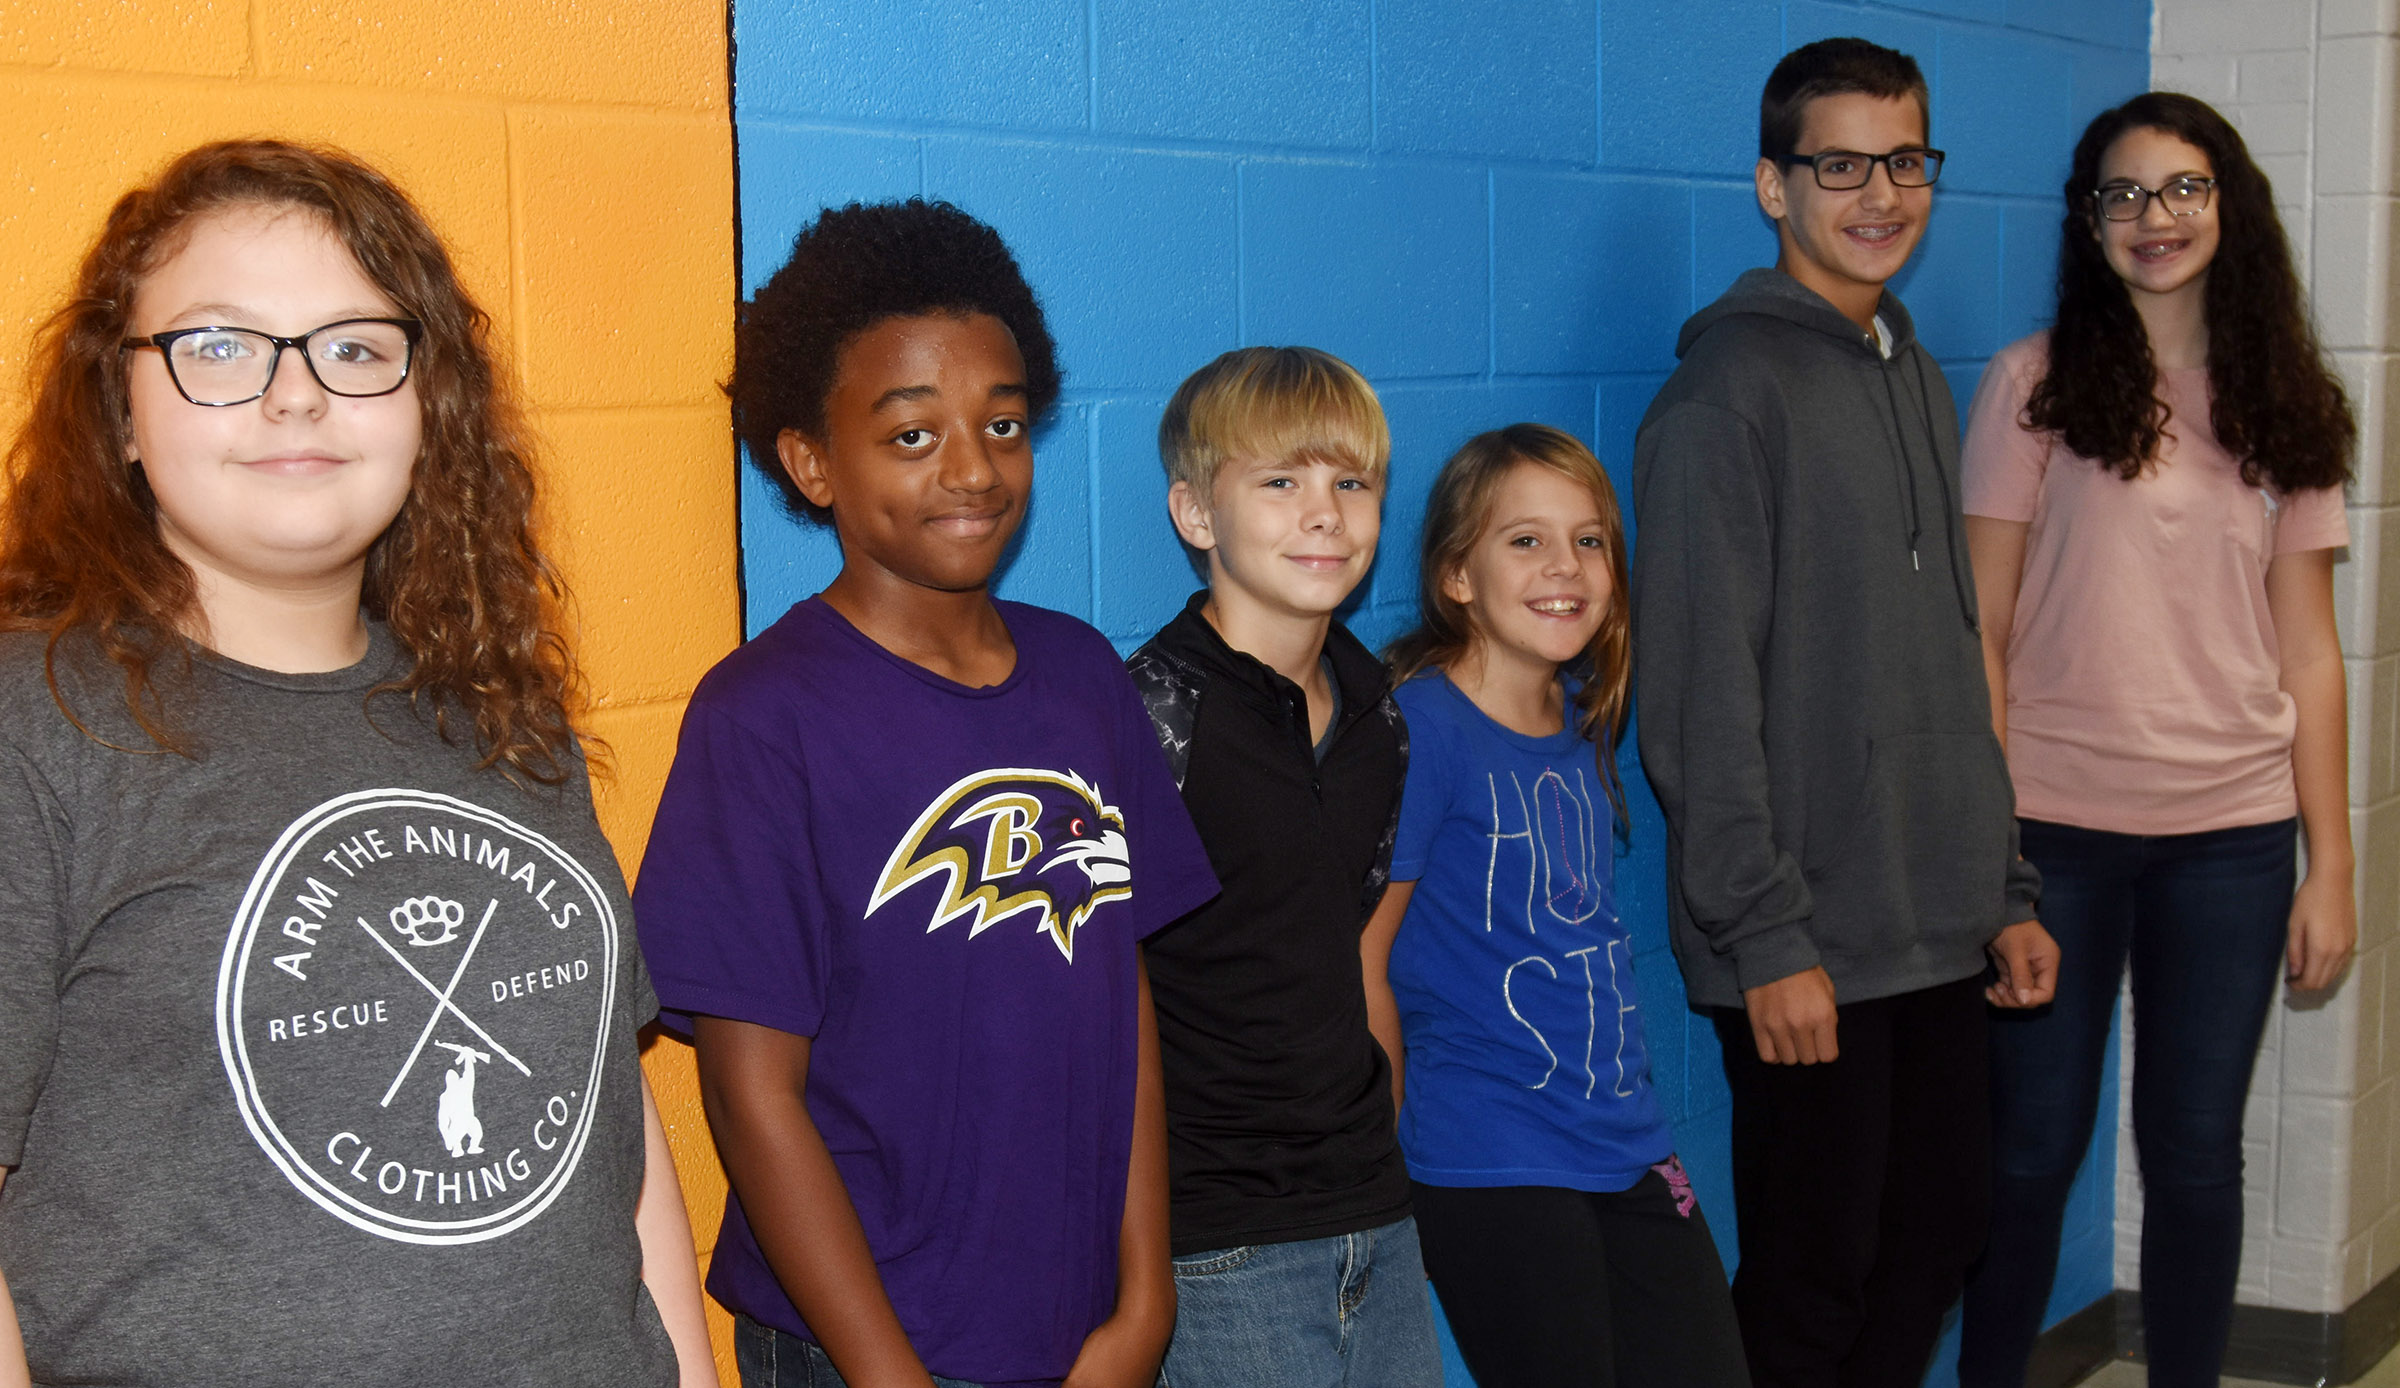 CMS Exceeding Eagles for the week of Sept. 17 are, from left, seventh-grader Chloe Mitchell, eighth-grader Zamar Owens, sixth-graders Thomas Tungate and Ellie Wise, seventh-grader Dalton Morris and eighth-grader Mary Russell.